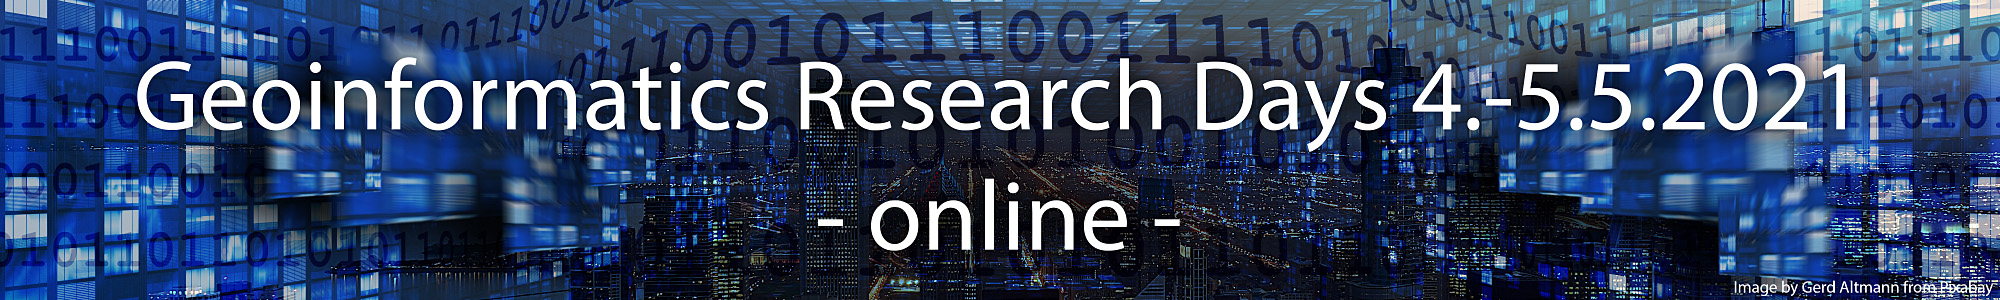 Geoinformatics Research Days 4.-5.5.2021, online